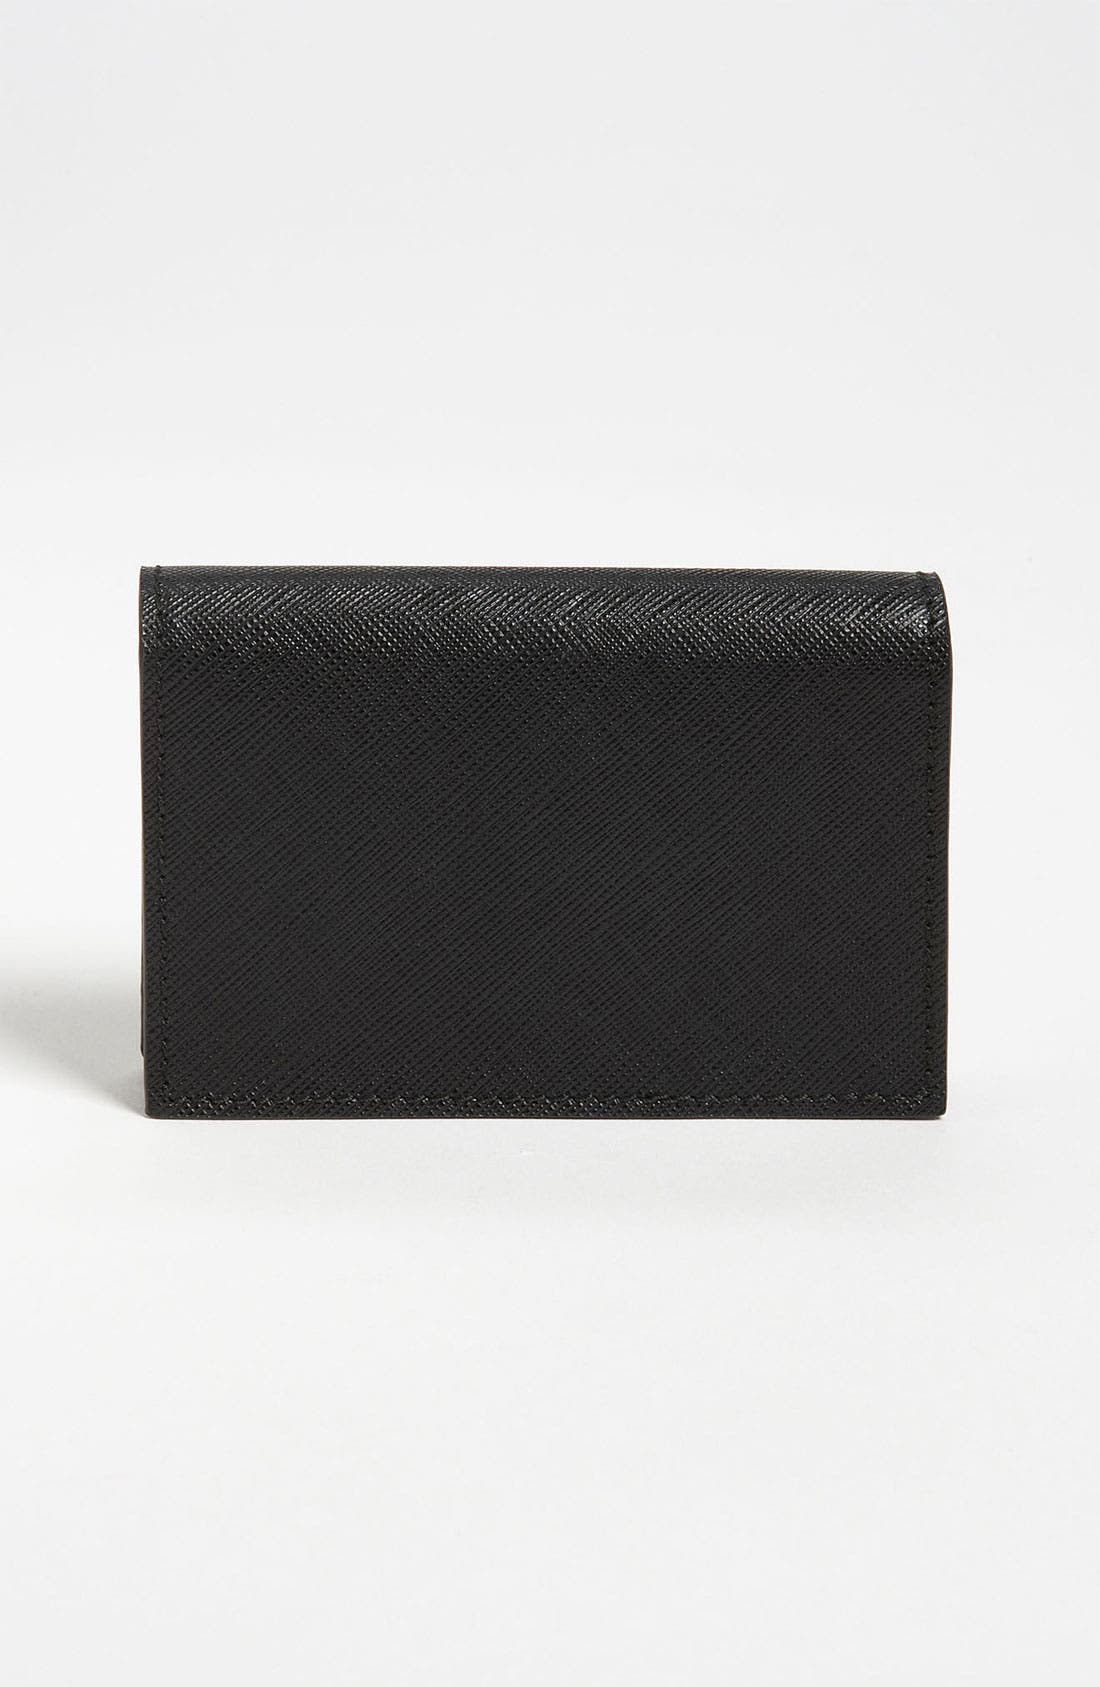 Alternate Image 2  - Salvatore Ferragamo 'Gancini Icona' Leather Card Case